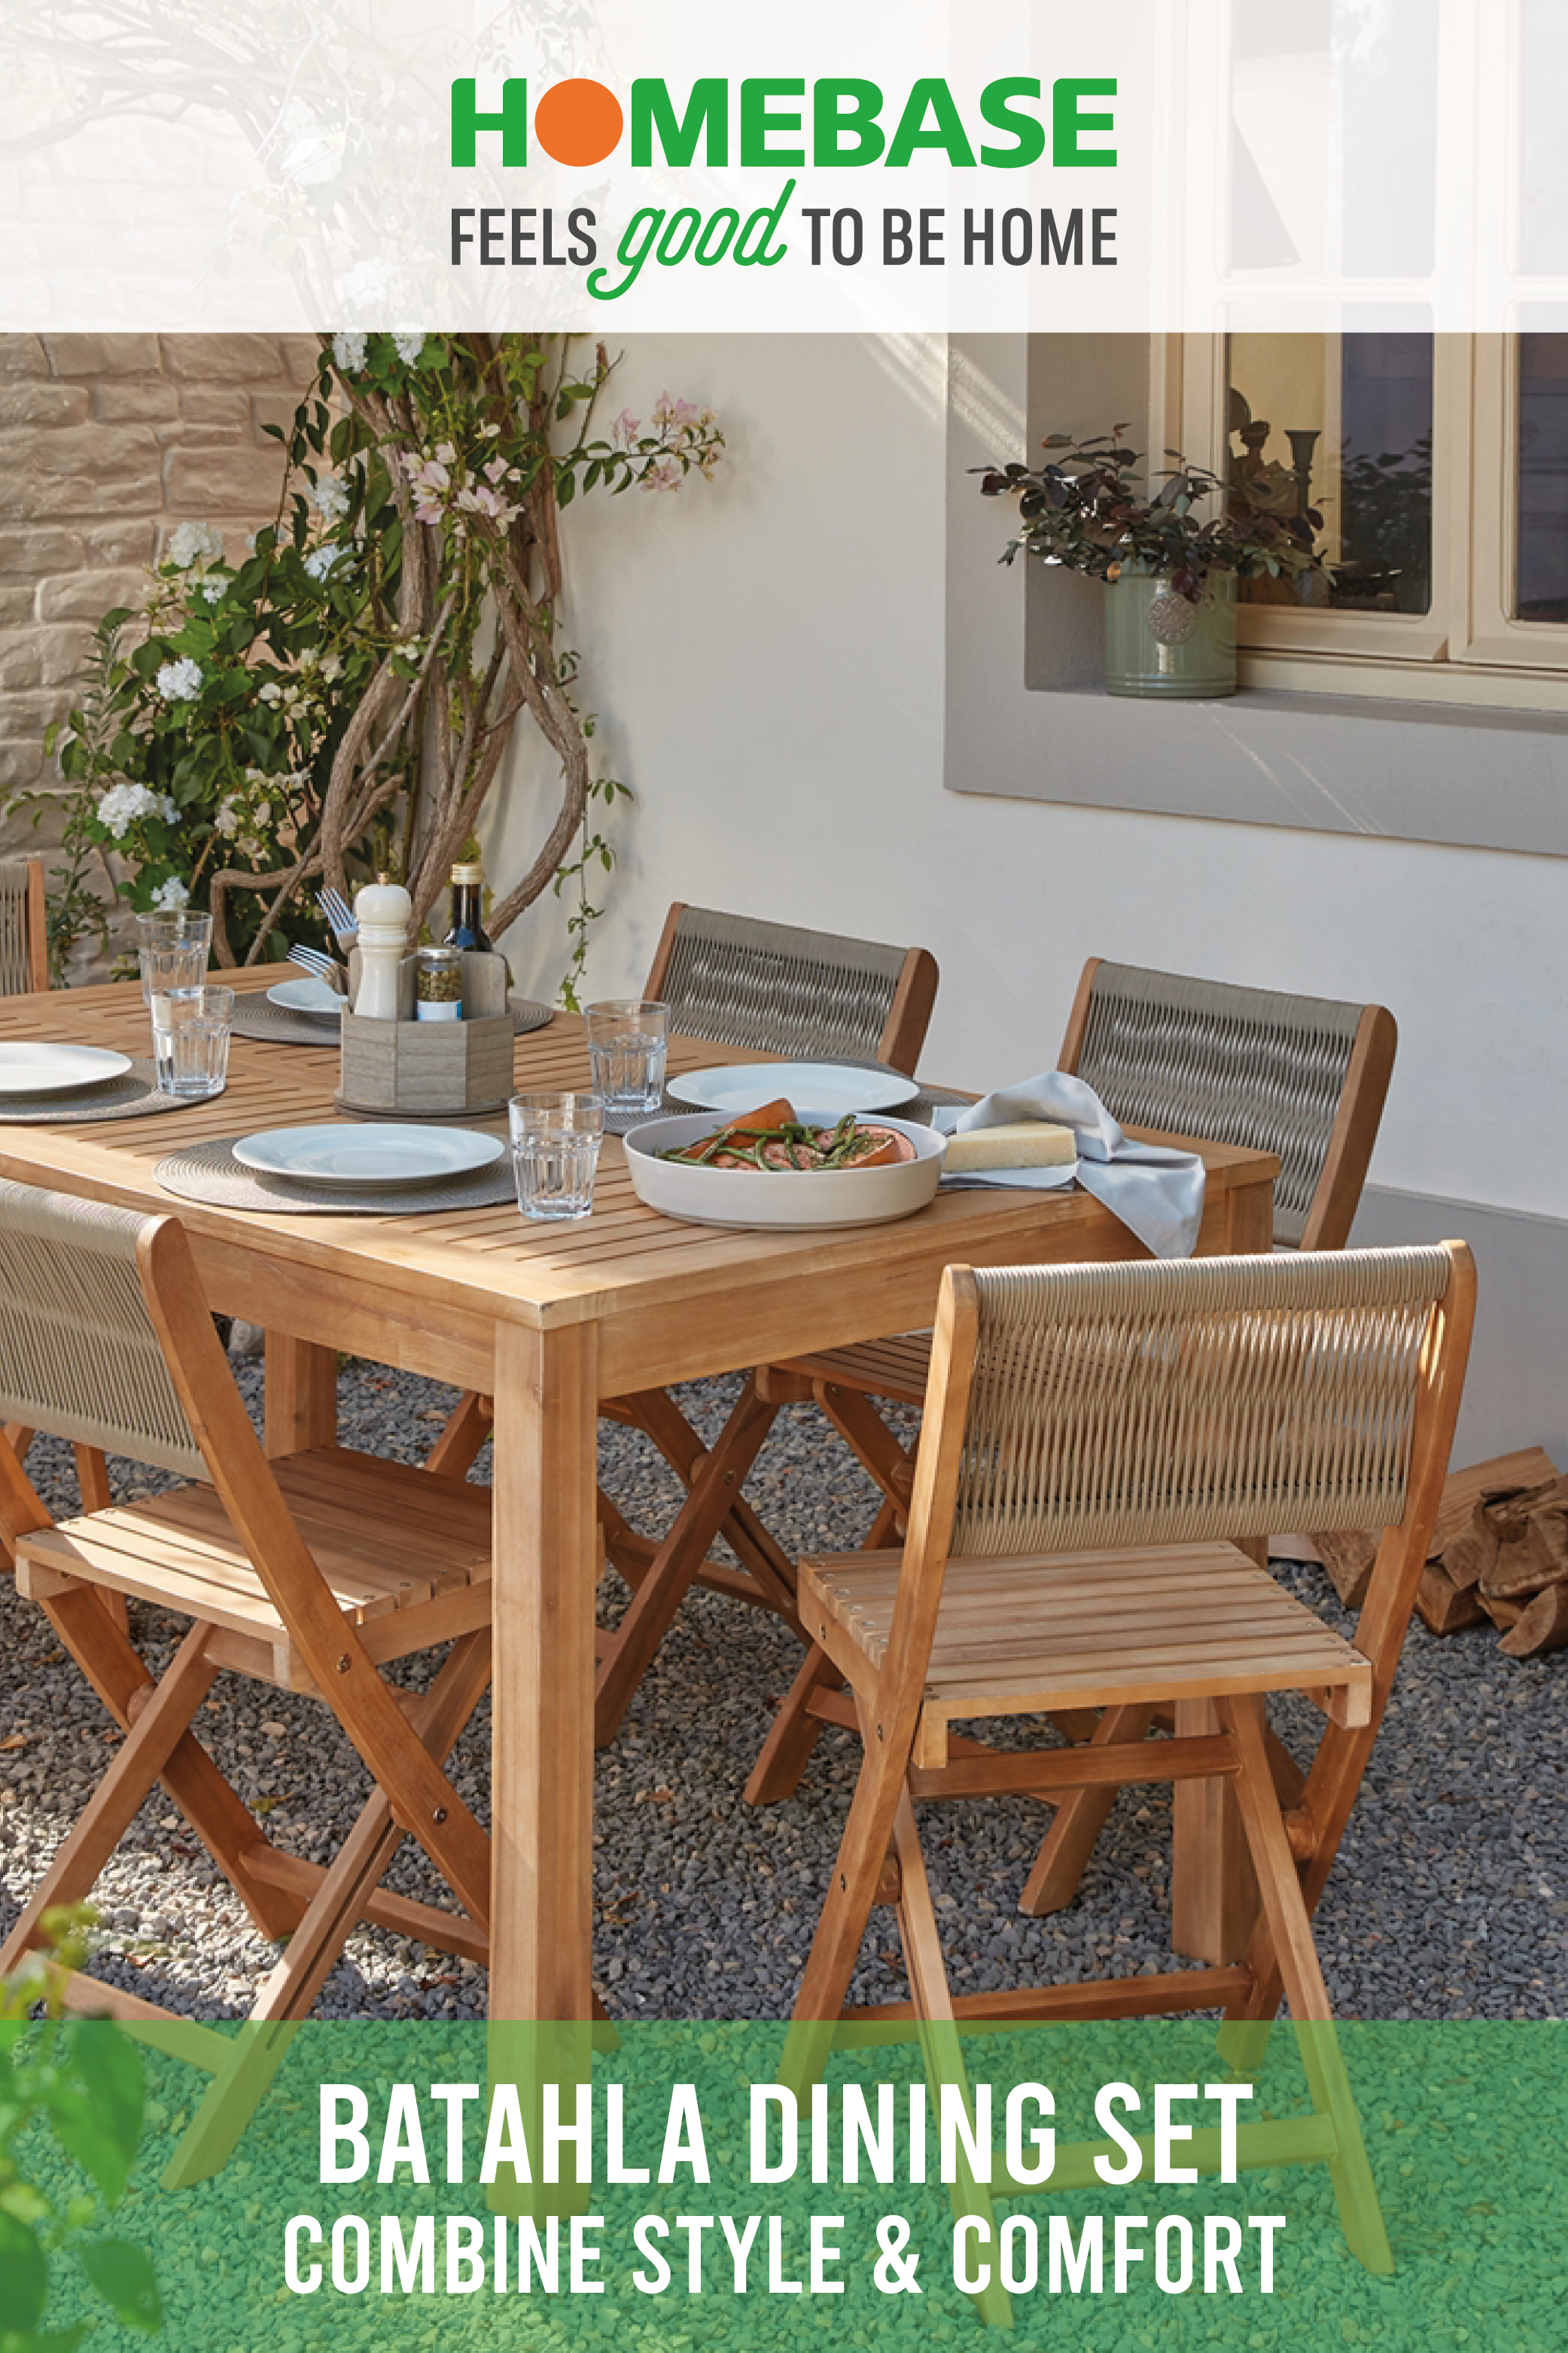 Hartington Batahla Wooden 6 Seater Dining Set In 2020 Dining Set Outdoor Decor Outdoor Tables